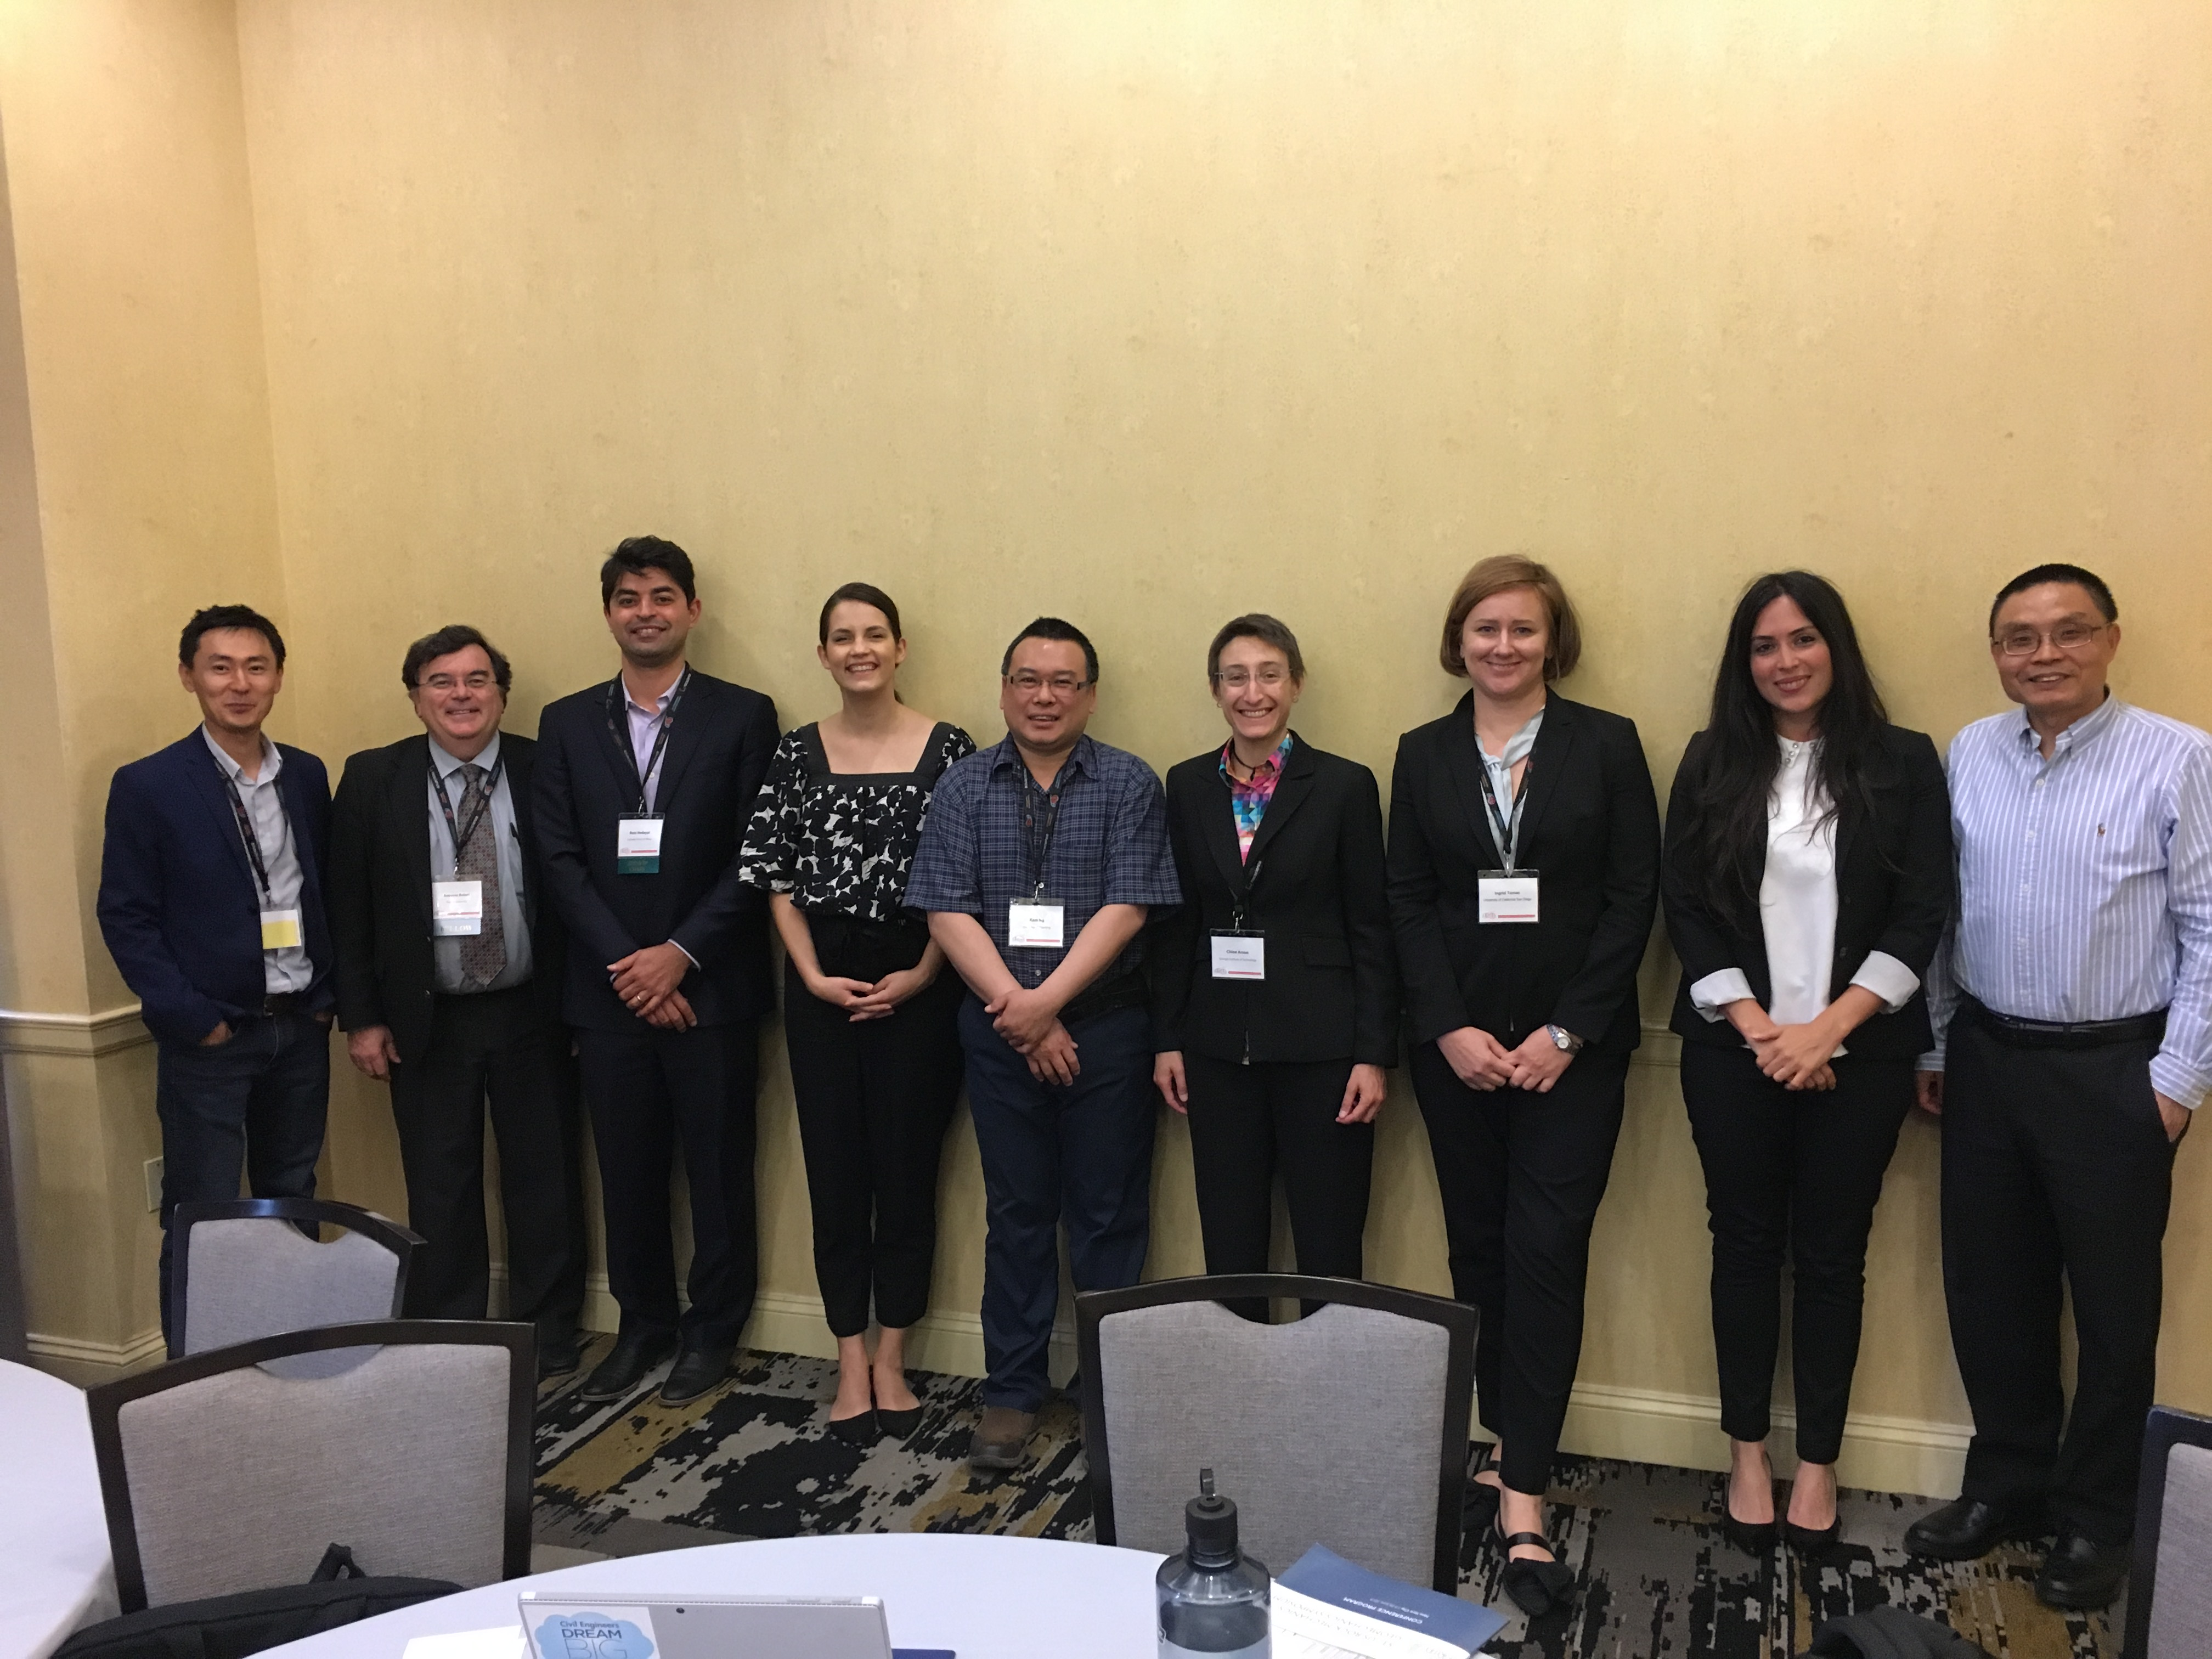 Rock Mechanics Technical Committee members at the 53rd US Rock Mechanics/Geomechanics Symposium held in New York, June 23-26, 2019